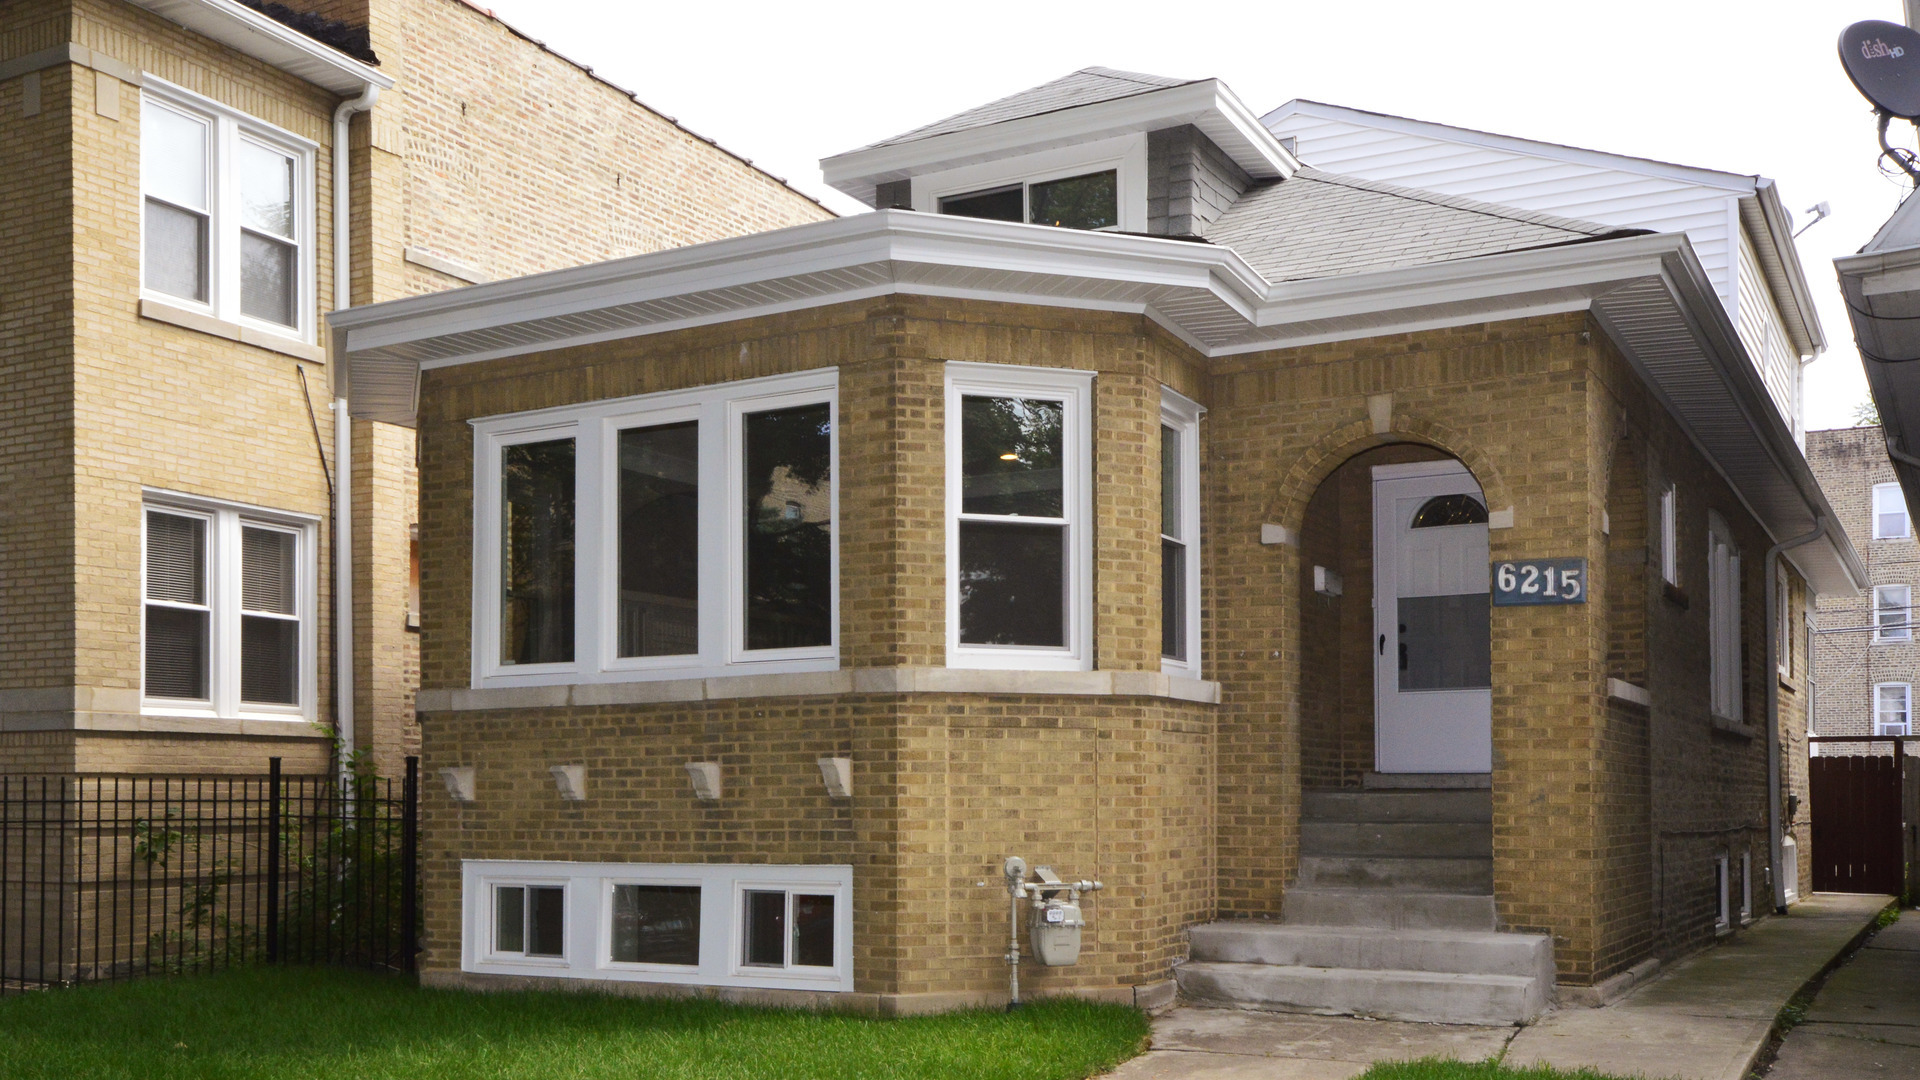 6215 North Fairfield Avenue, one of homes for sale in North Park Chicago